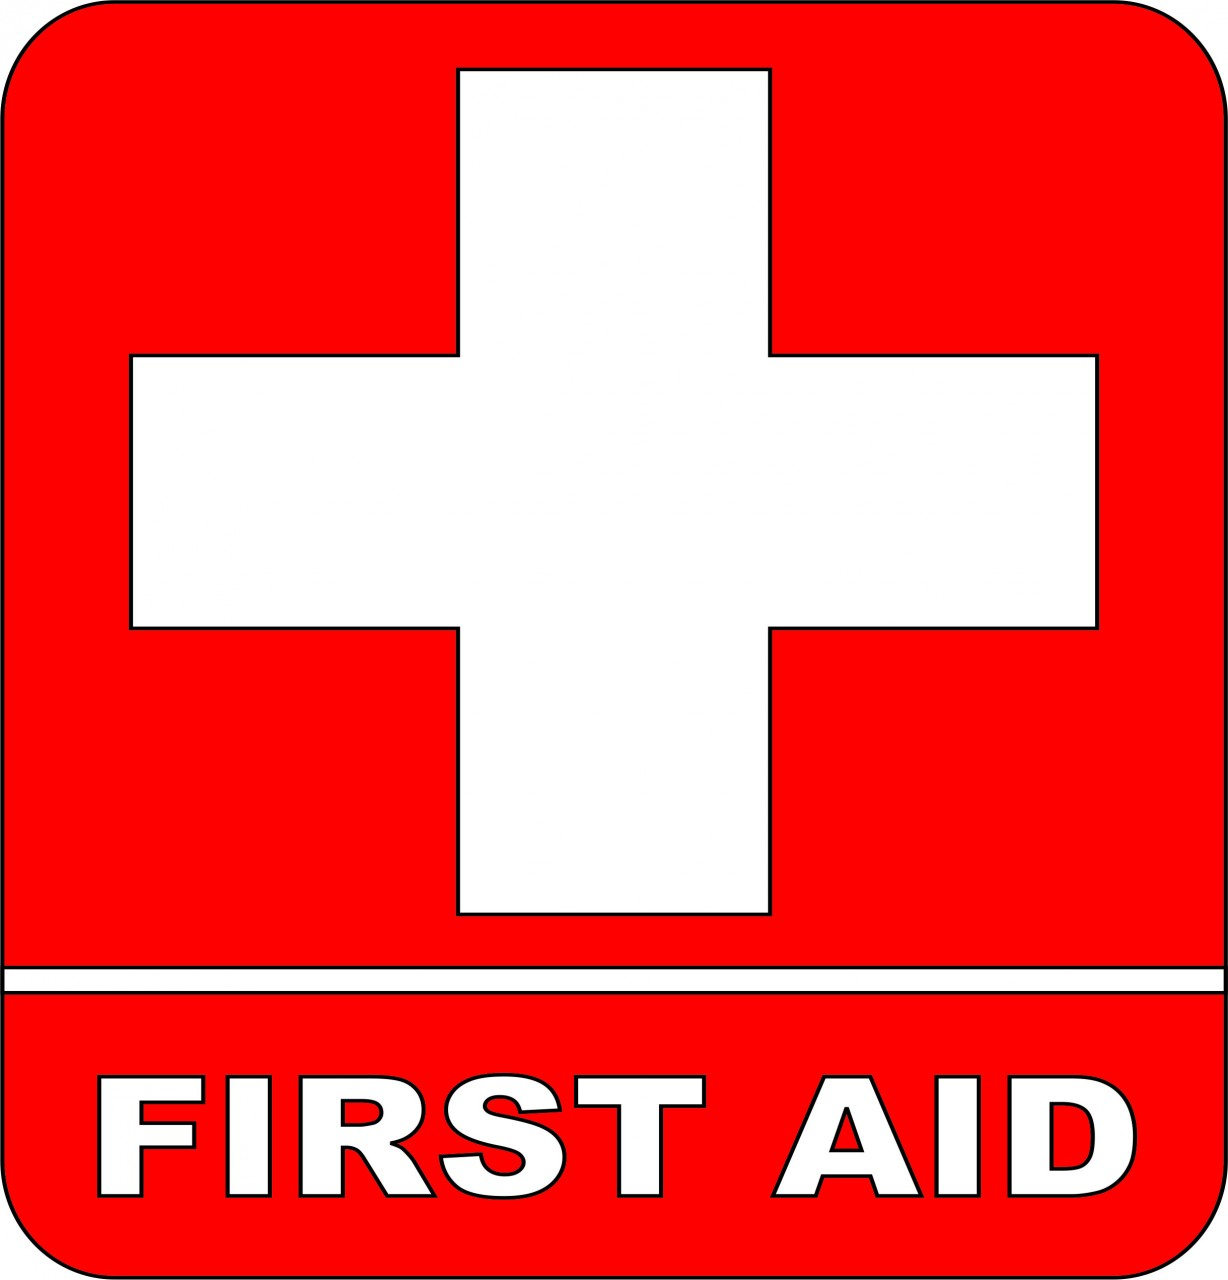 First aid logo clipart best for First aid certificate template free